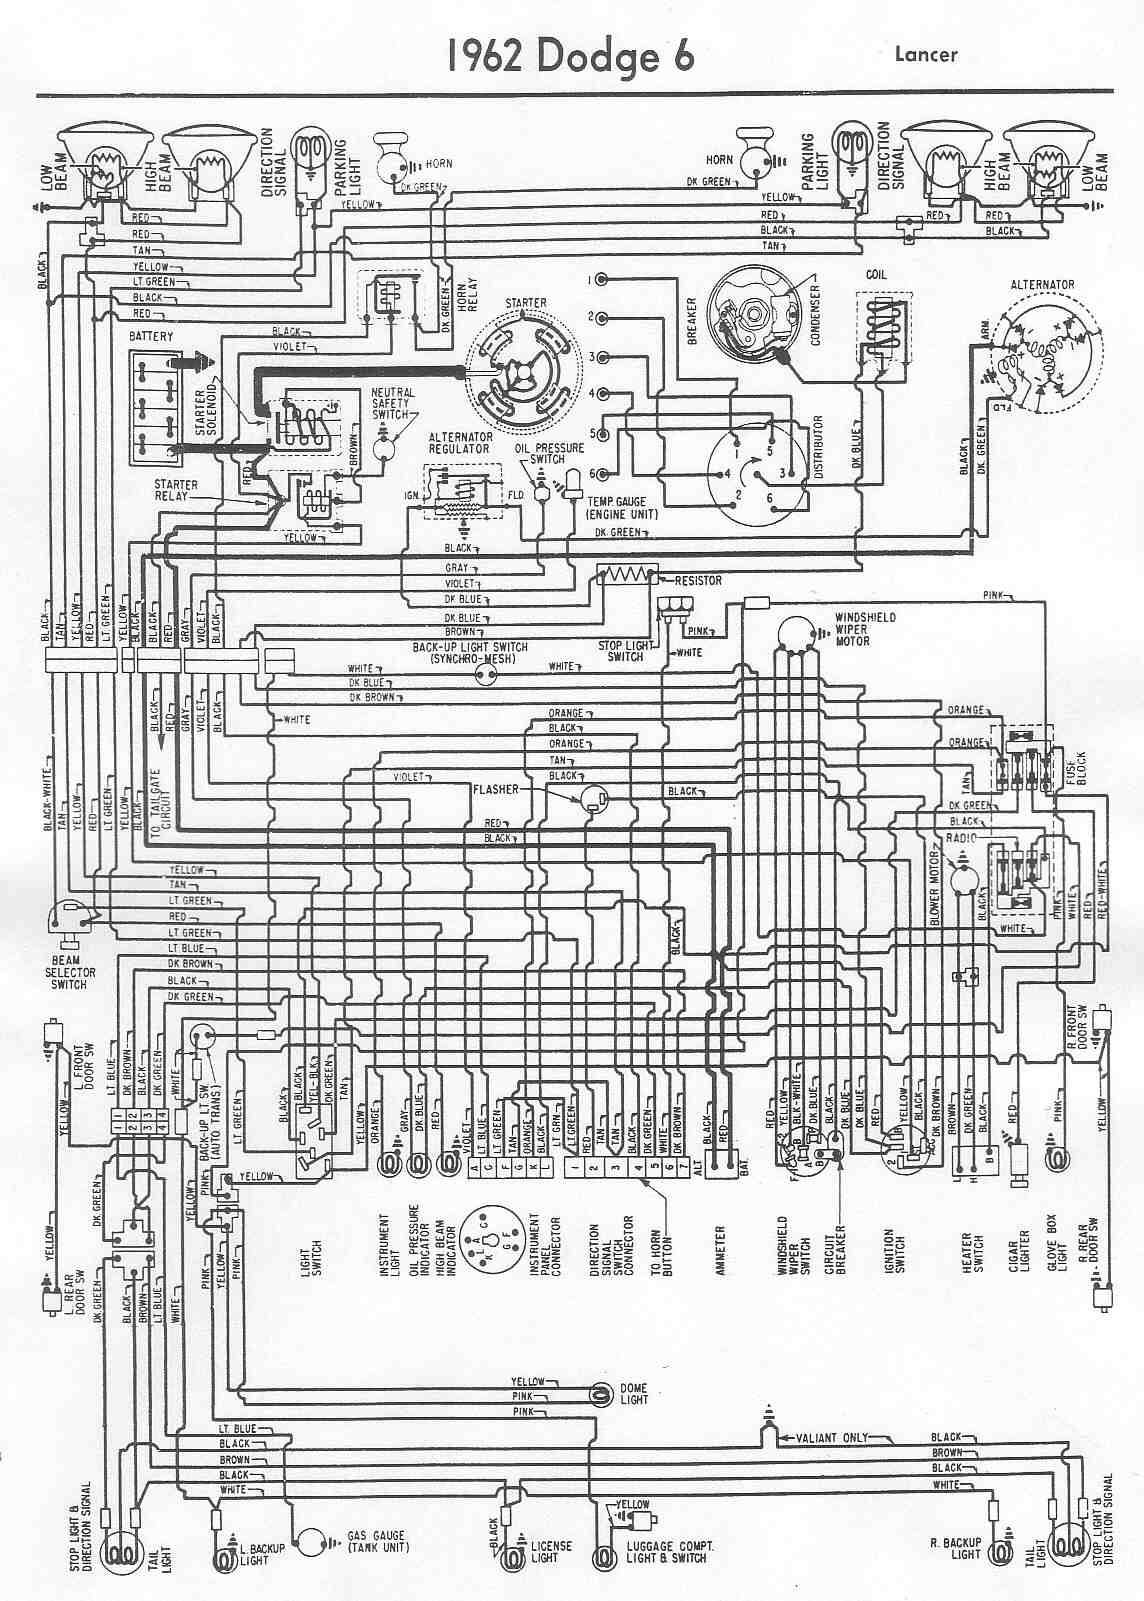 Ford Alternator Wiring Diagrams 1997 Electrical Diagram Schematics 1985 Dodge Ram D150 As Well Lancer Services U2022 Regulator